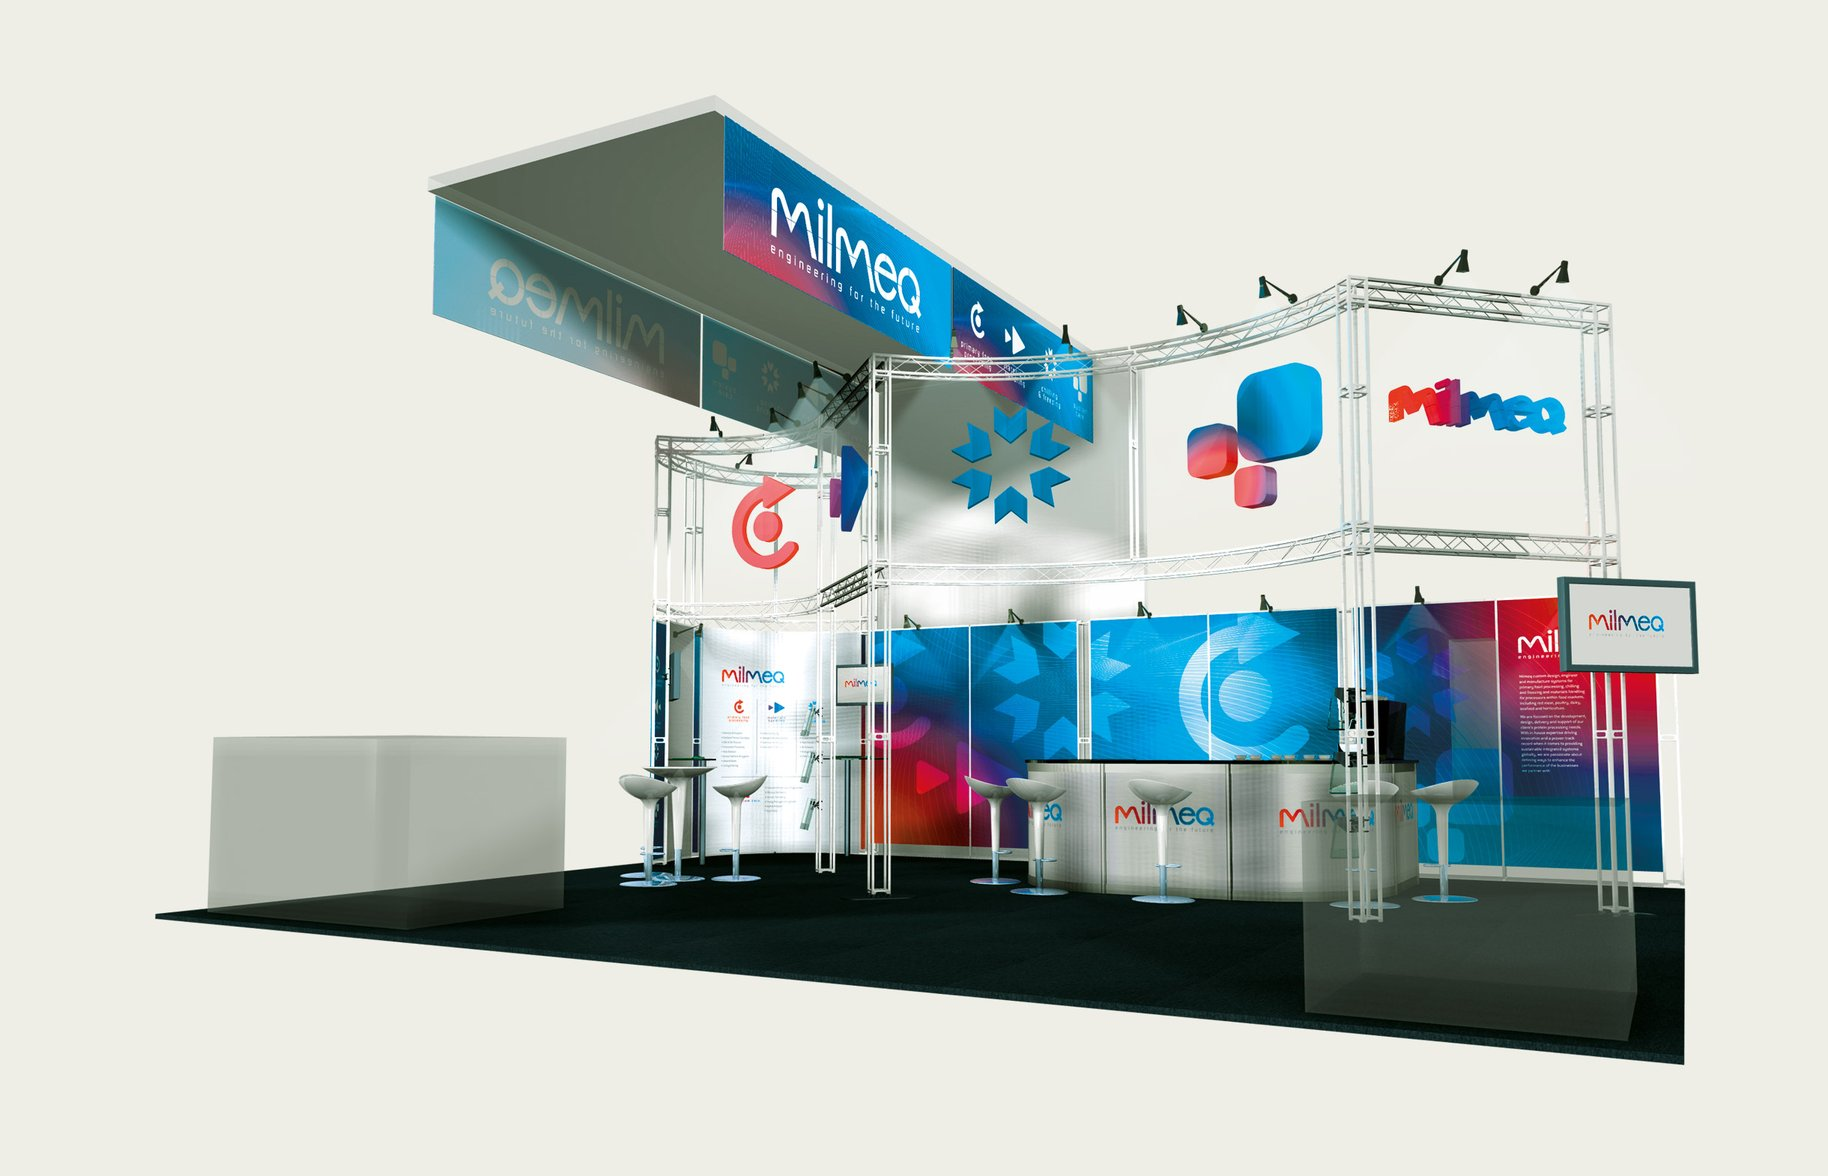 Milmeq Brand Identity trade show booth display